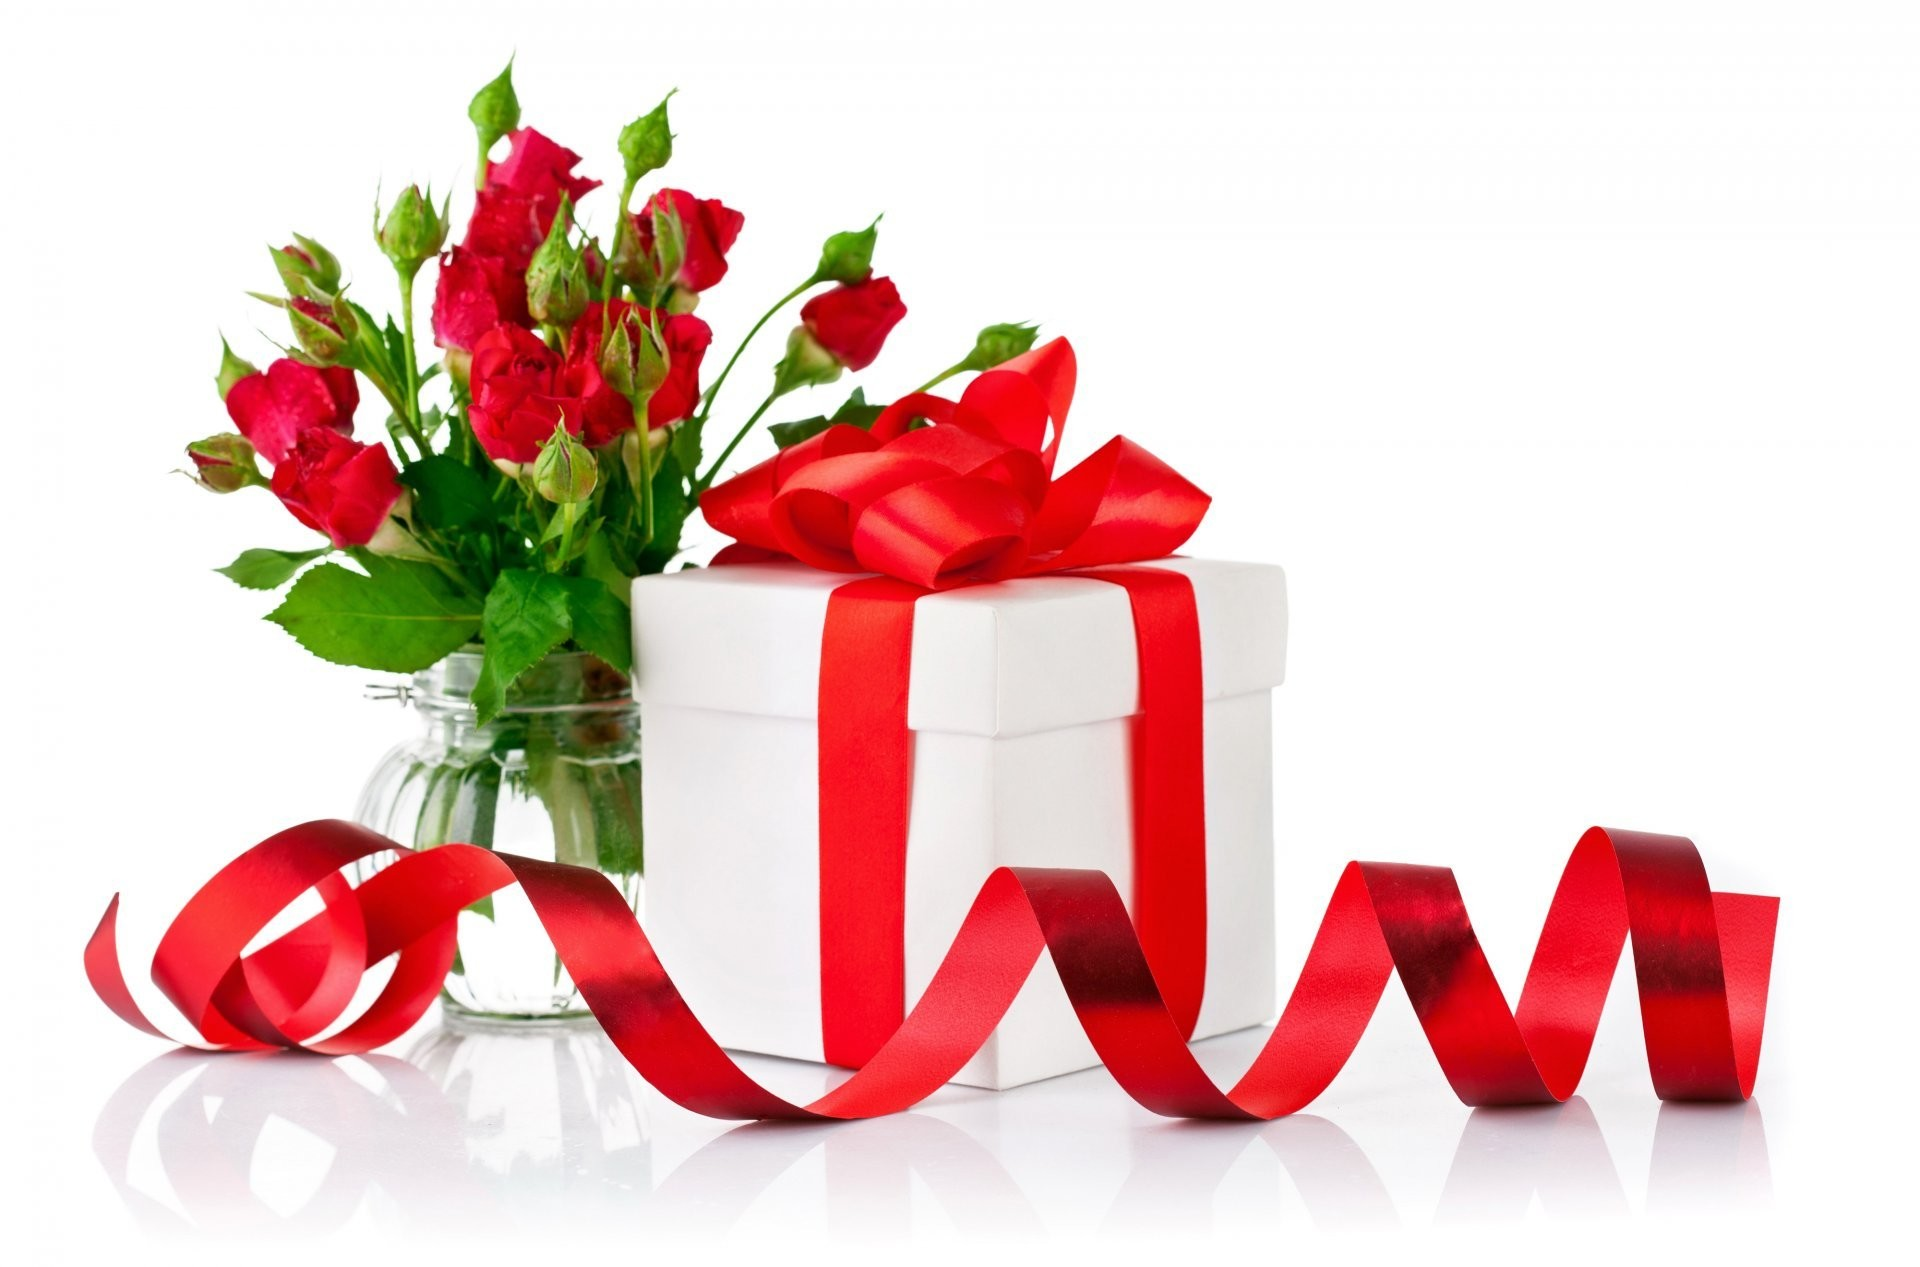 flowers rose gift valentine's day flower roses present bow